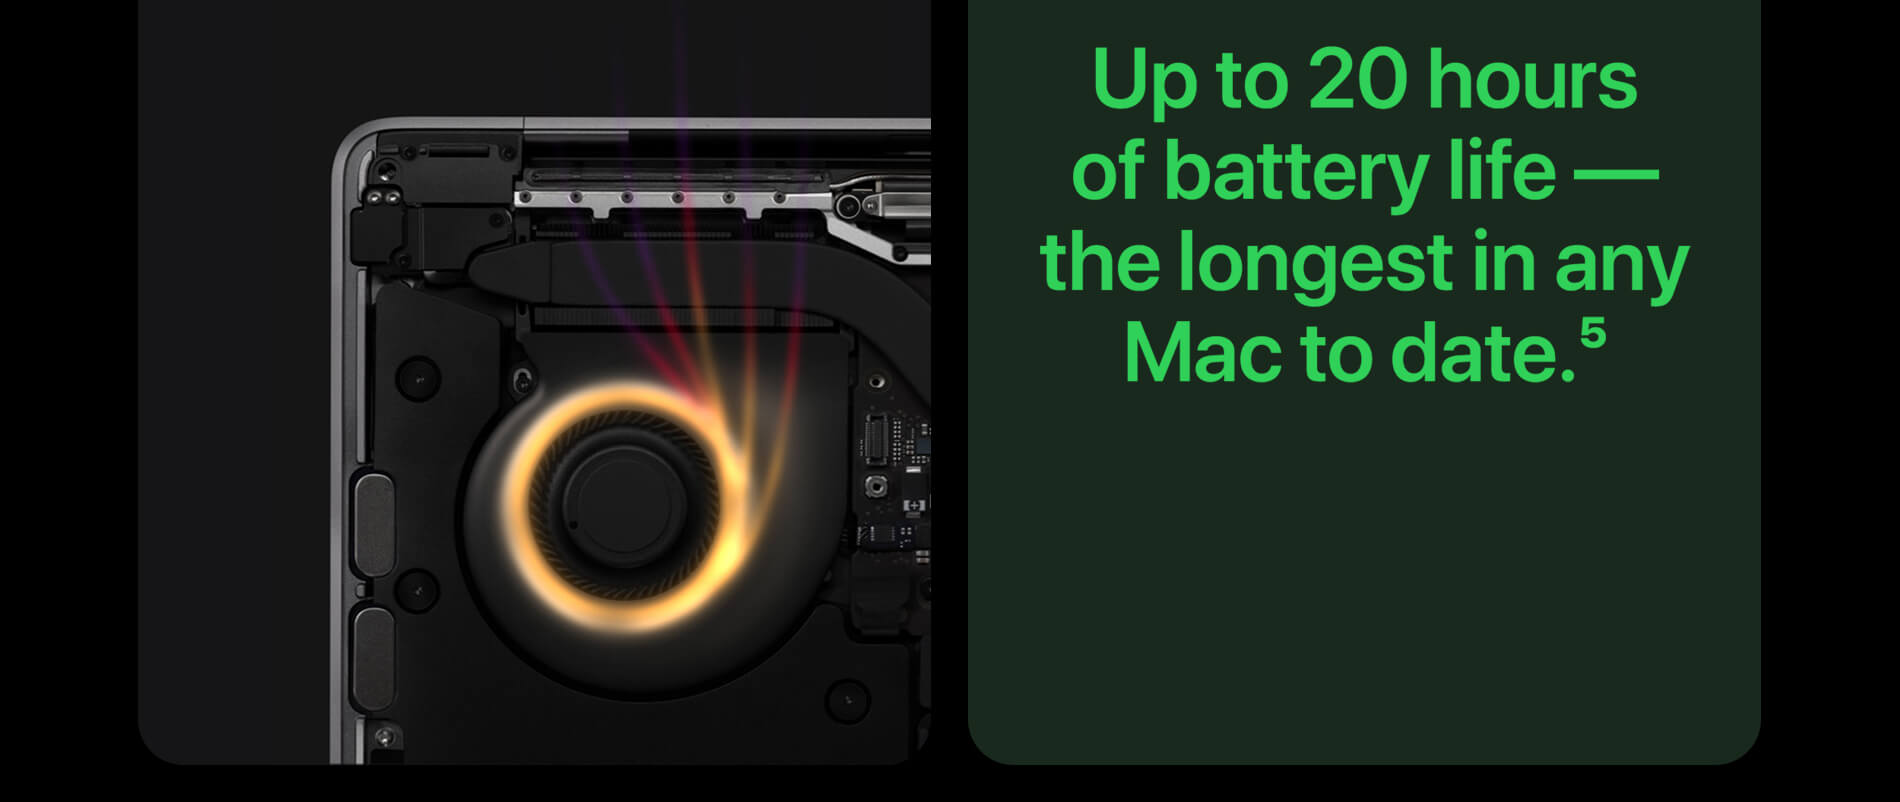 MacBook Pro with Apple M1 chip